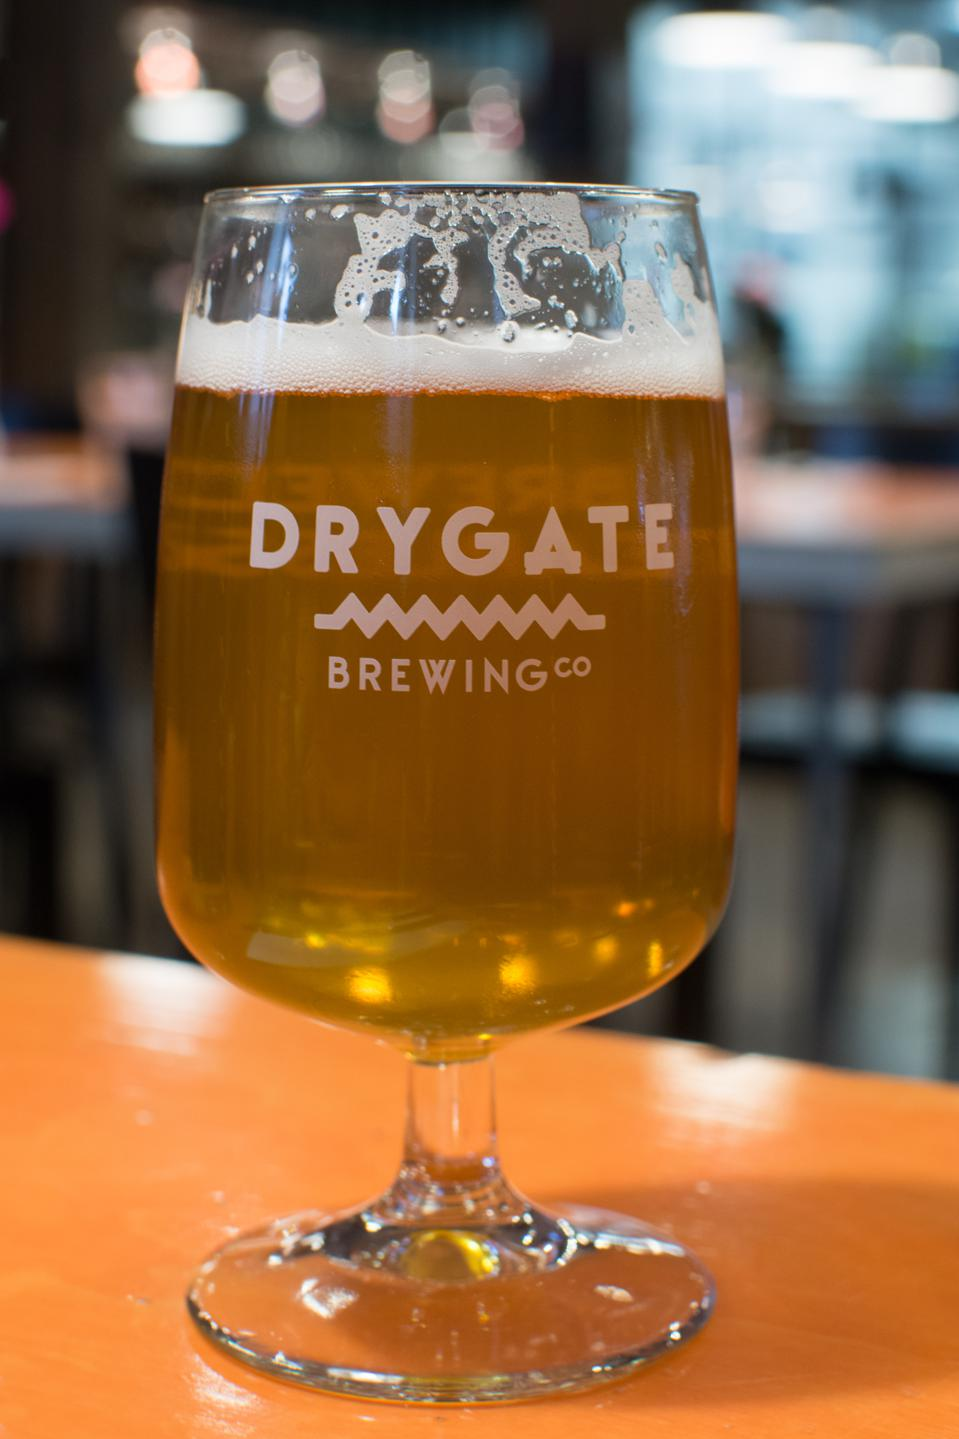 glass of Drygate craft beer